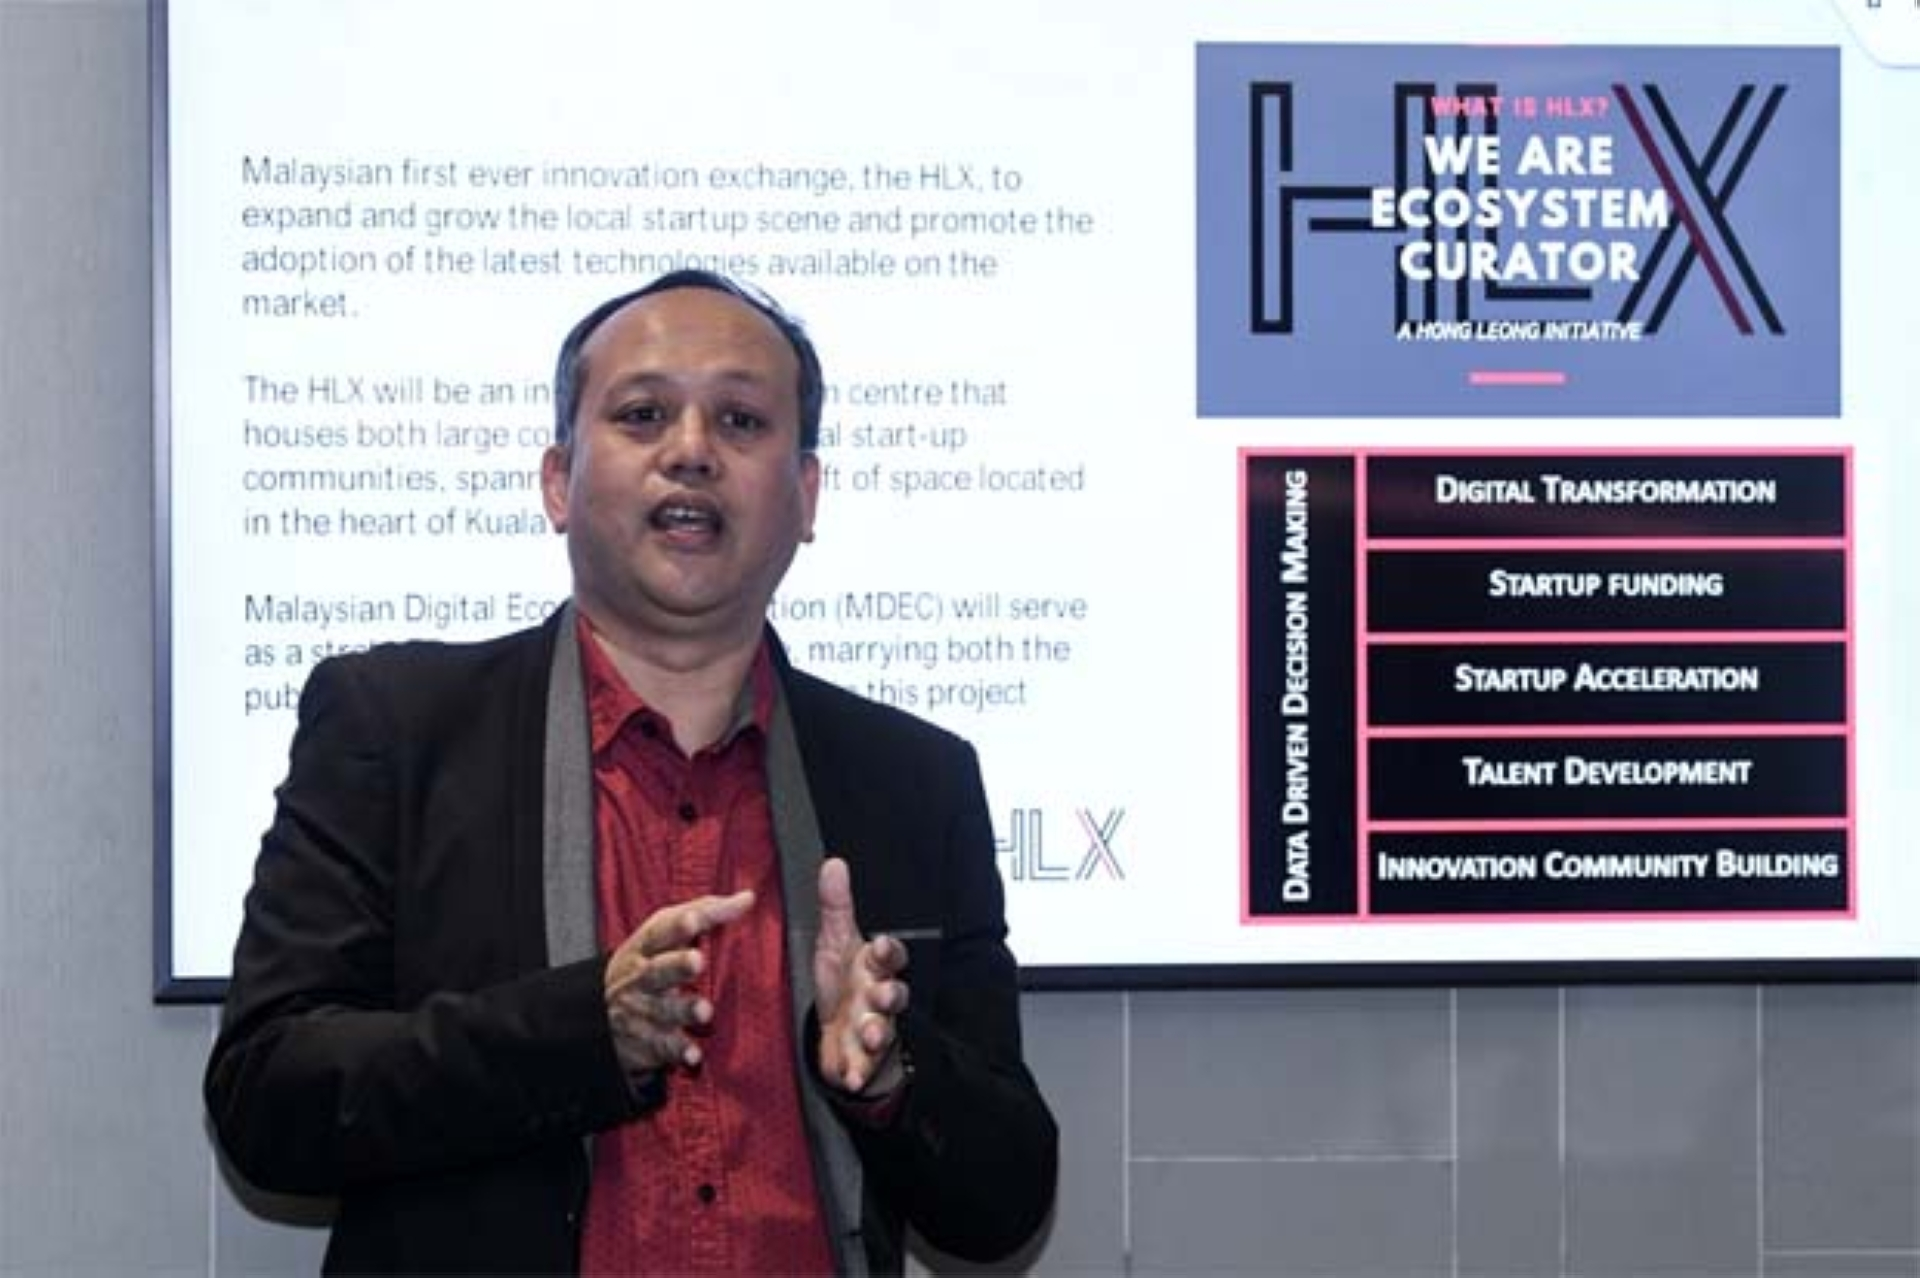 HLXM General Manager Mohd Reezan Mohd Fadzil(pic) speaking during HLX Integrated Innovation Centre Collaboration with KCOM Group in support of Malaysia Digital Transformation press conference yesterday